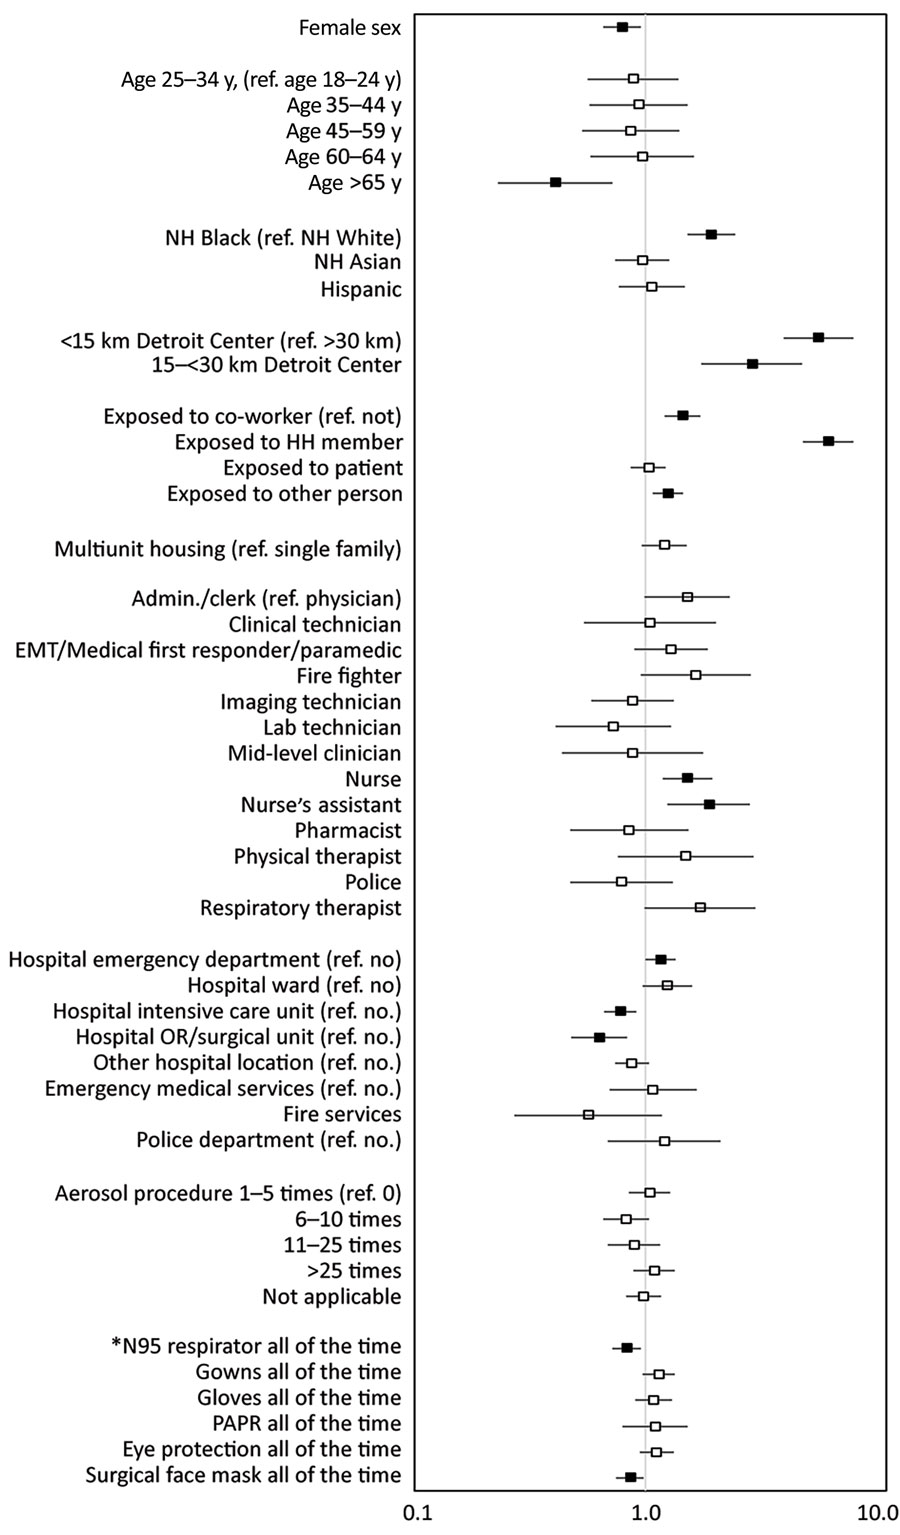 "Adjusted odds ratios and 95% CIs for seropositivity for SARS-CoV-2 among healthcare, first response, and public safety personnel, Detroit metropolitan area, Michigan, USA, May–June 2020. Adjusted model was estimated using generalized estimating equations including all variables shown. Participants with other occupations, of other race/ethnicity, or who declined to provide their race/ethnicity are included in the models, but not shown as separate categories. Workplace variables are not mutually exclusive. Reference categories are noted in parentheses for each section. ED, emergency department; EMT, emergency medical technician; HH, household; Med 1st resp, medical first responder; NH, non-Hispanic; PAPR, powered air-purifying respirator; ref., reference; SARS-CoV-2, severe acute respiratory syndrome coronavirus 2. *Reference groups for personal protective equipment variables are all other responses with less frequency than ""all the time."""